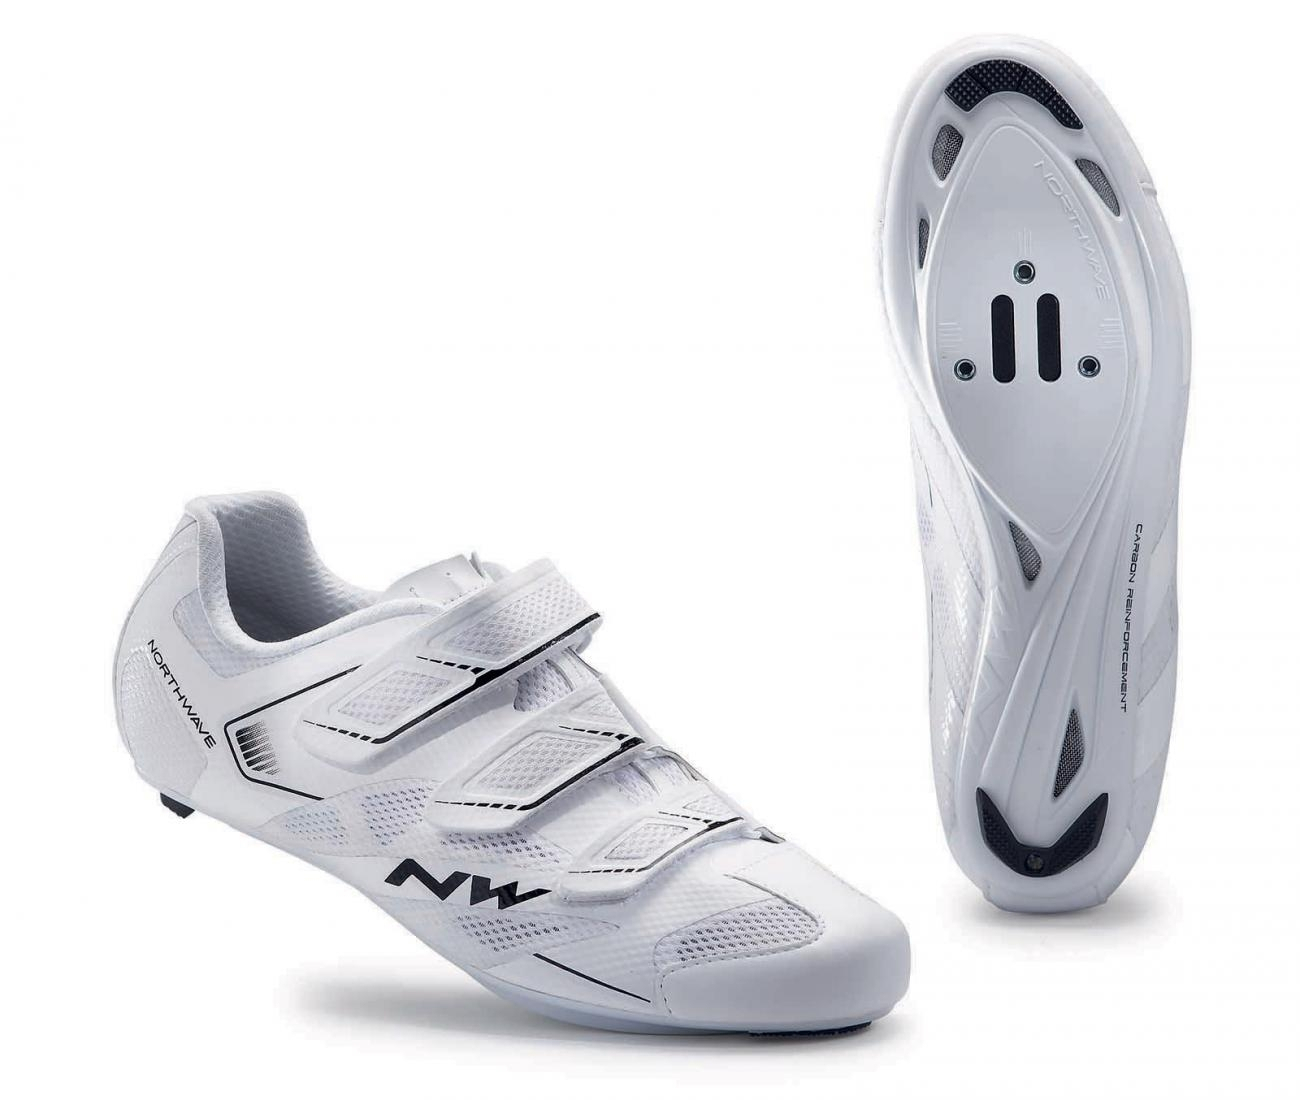 NORTHWAVE Man road cycling shoes SONIC 2 white